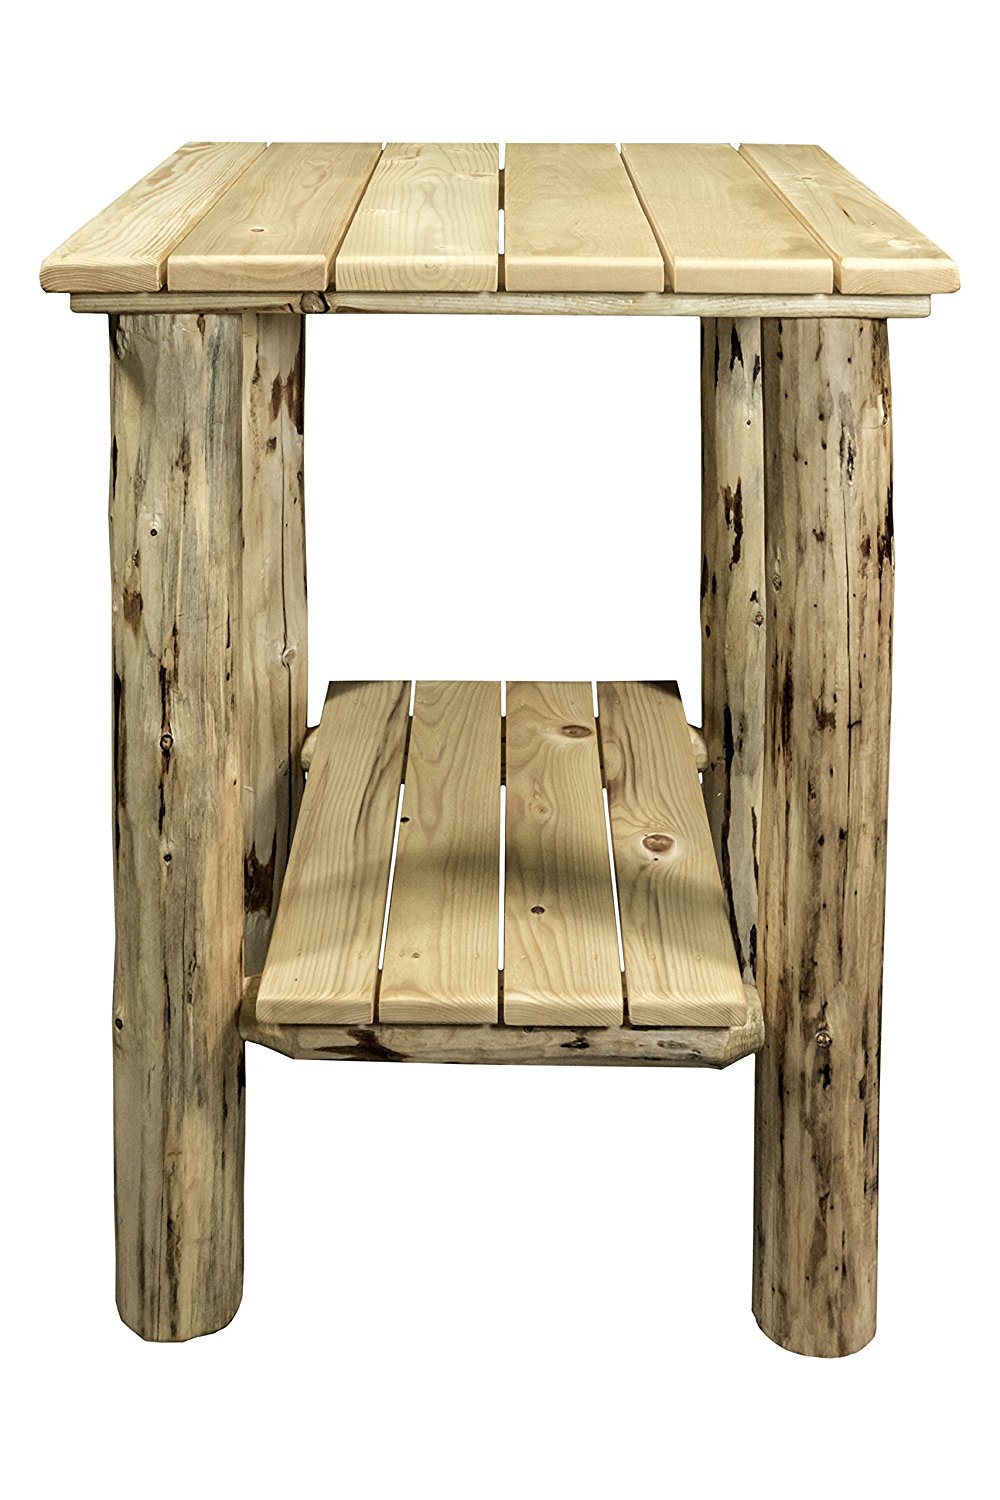 Montana Woodworks Montana Collection Exterior End Table, Clear Exterior Finish